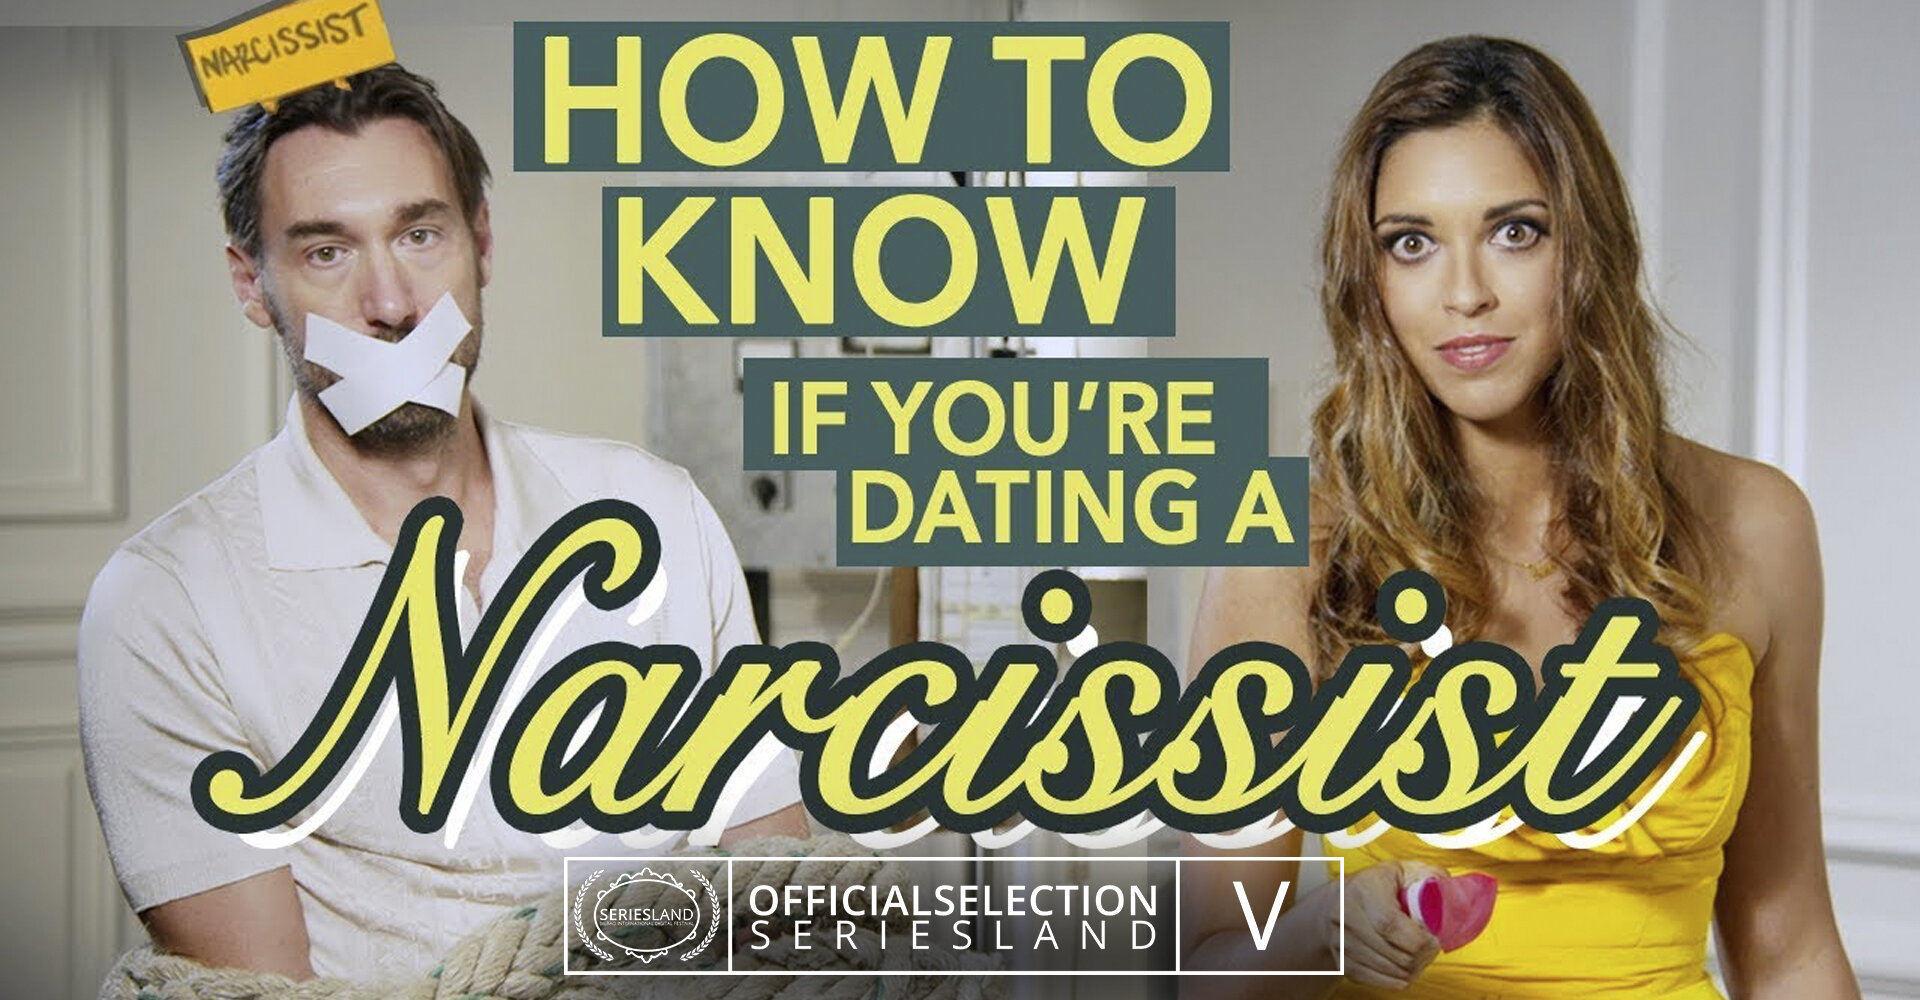 How-To-Know-If-You_re-Dating-a-Narcissist.jpg